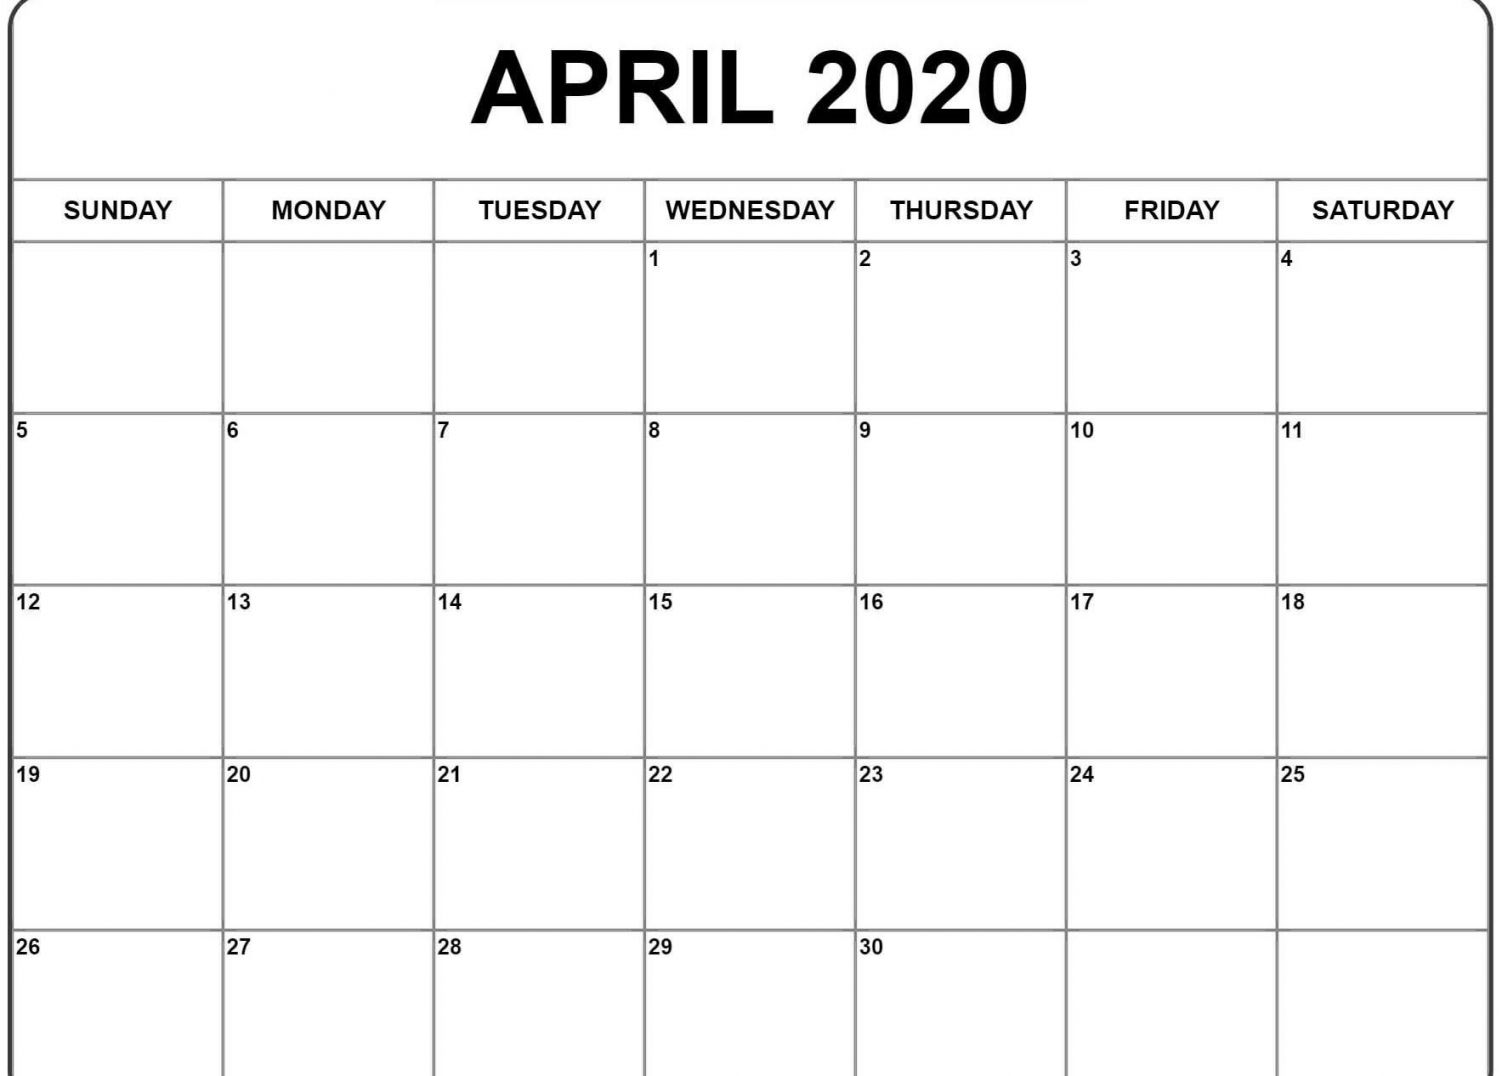 Delightful To Help The Website Within This Time Period I Am Going To Provide You W Printable Calendar Template Blank Calendar Template Printable Calendar 2020